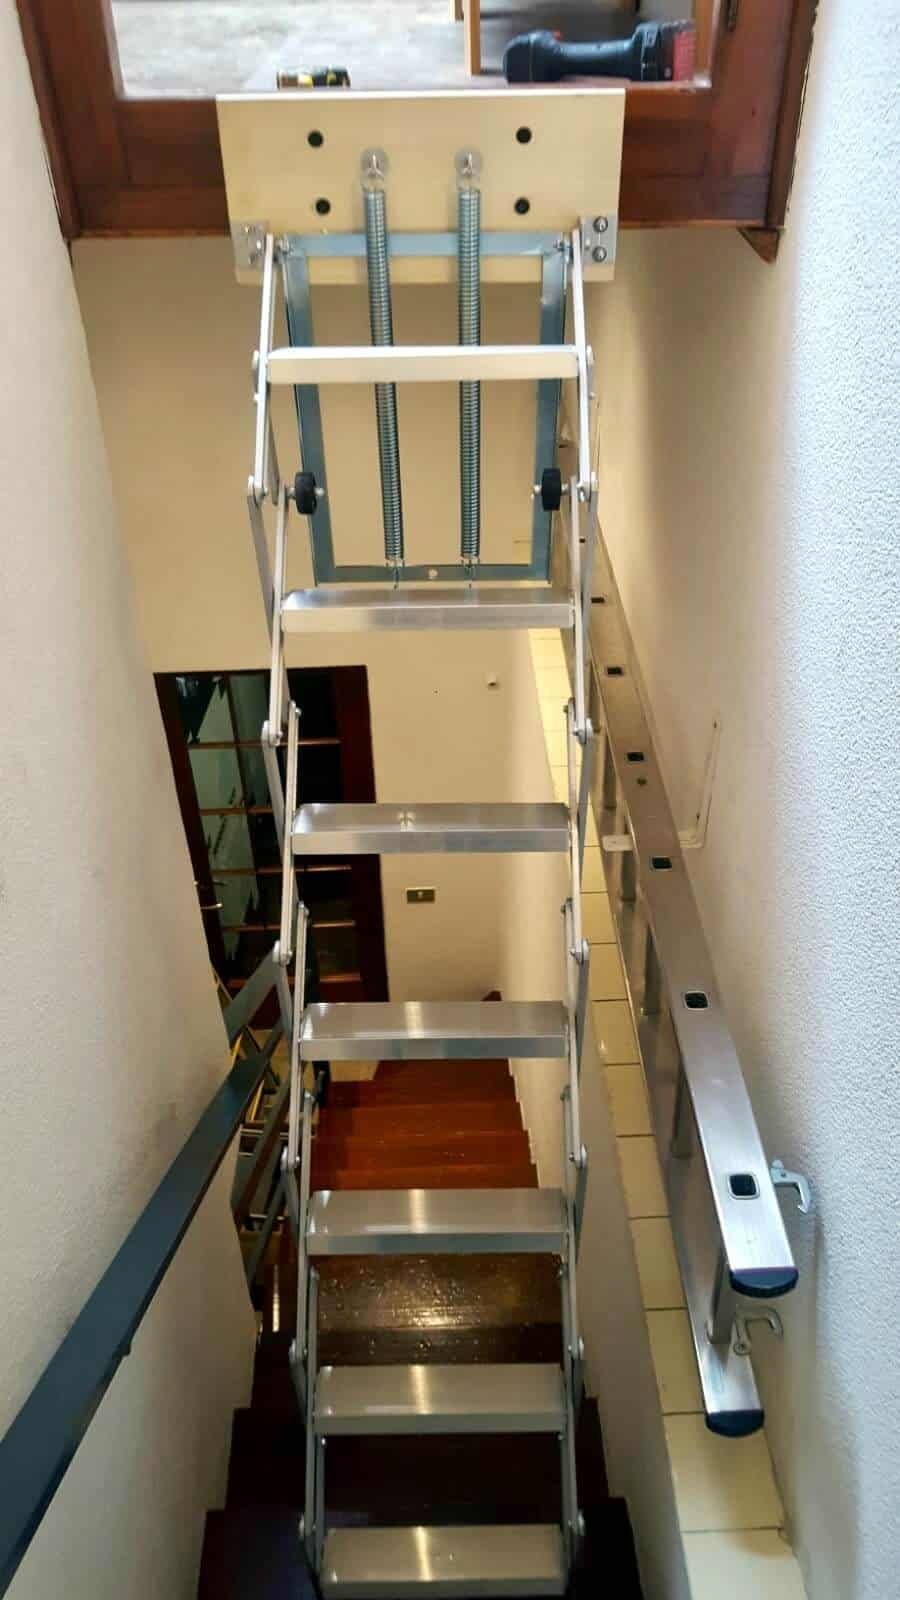 Escalera plegable para altillos mini | Enesca.es